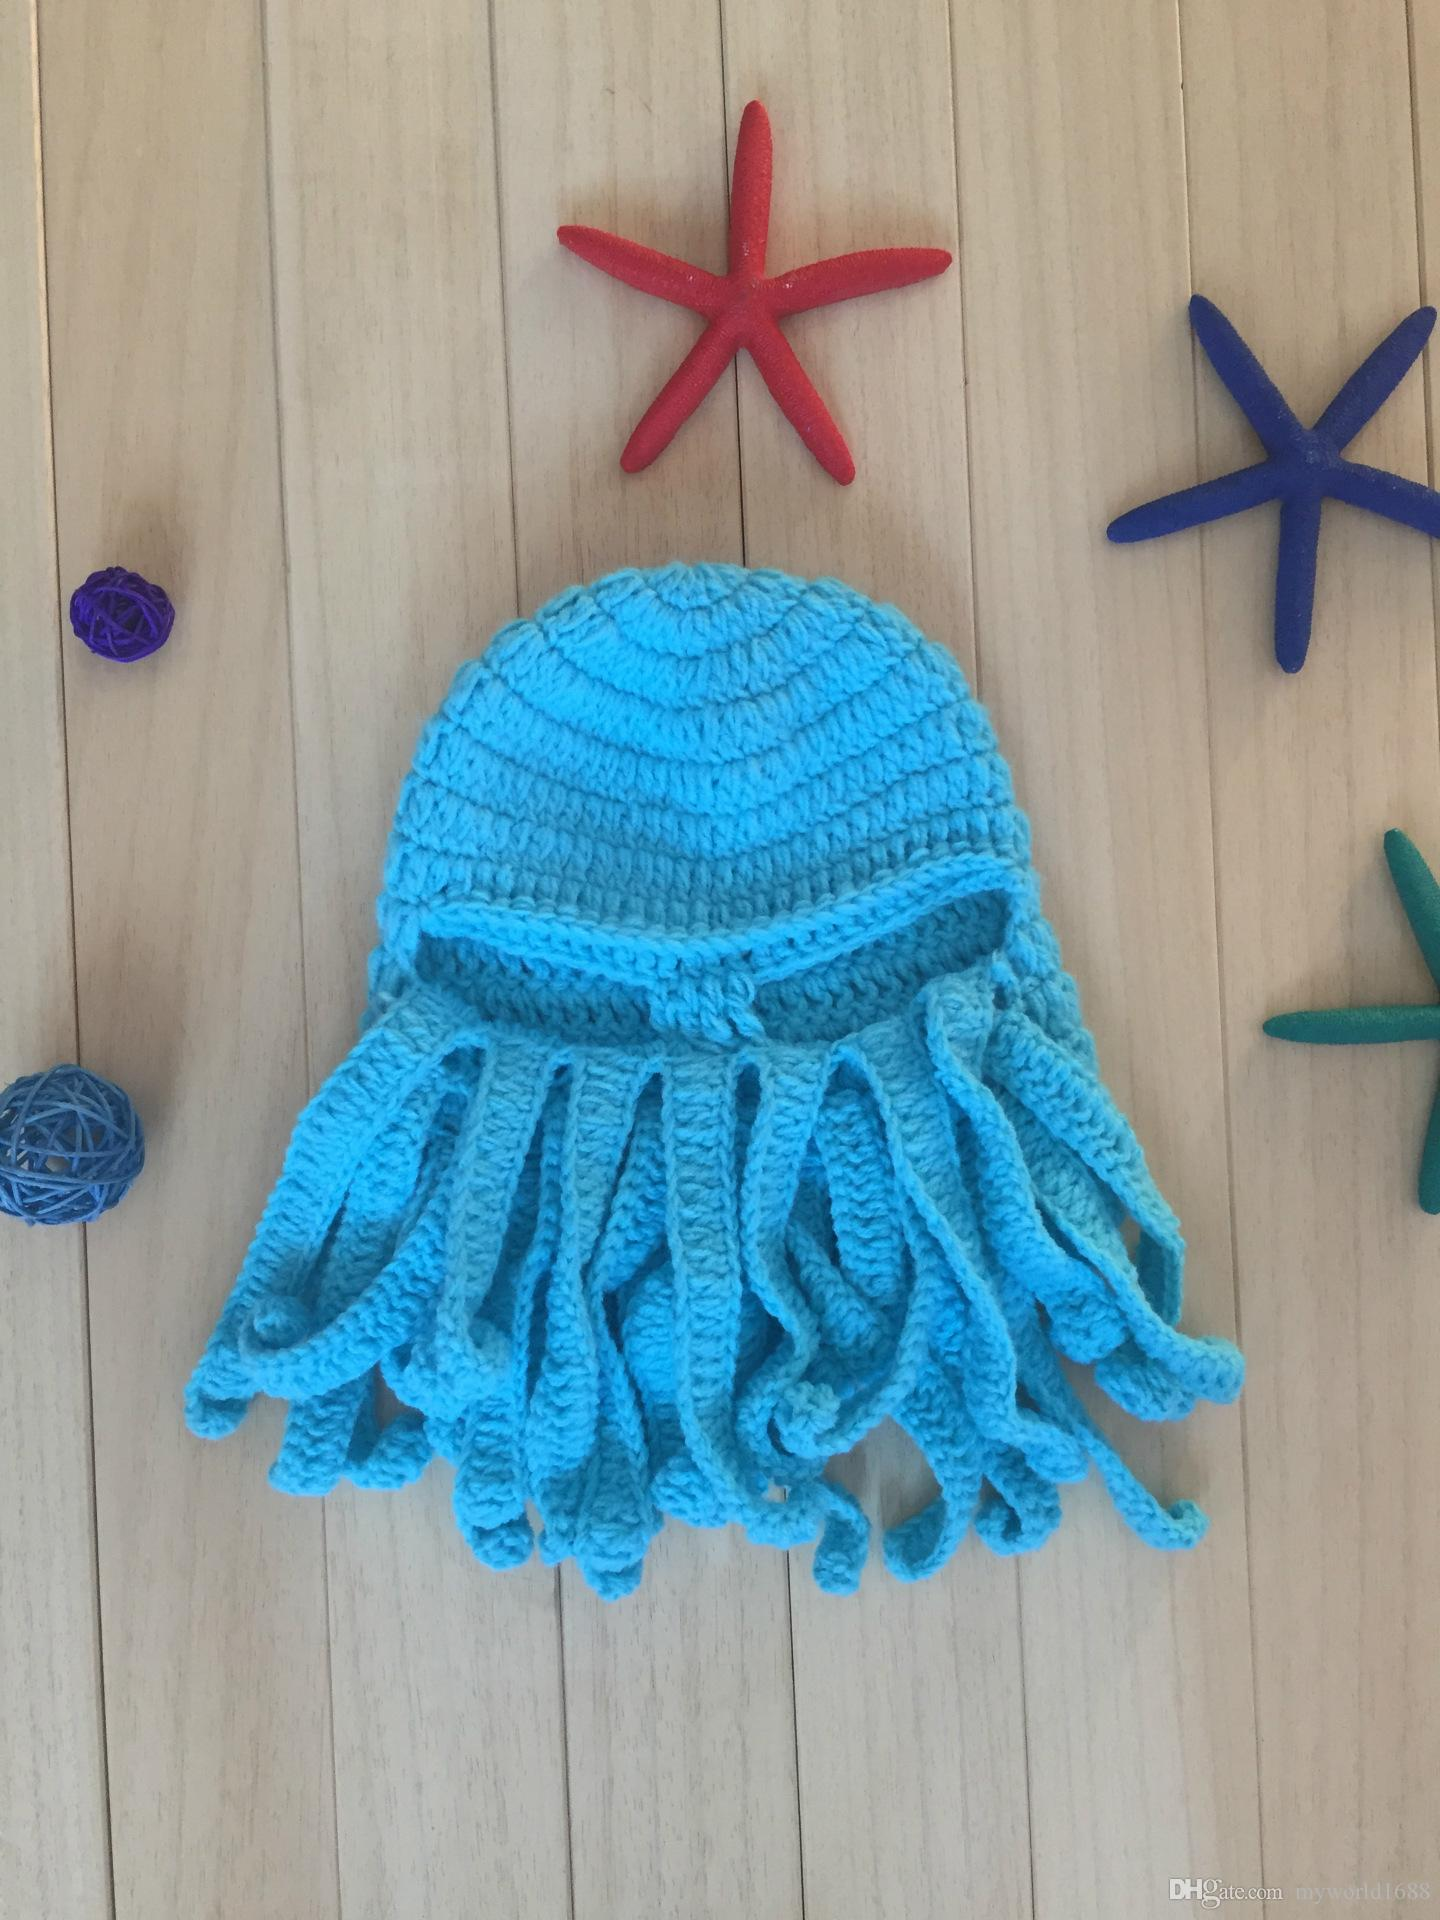 Unisex Octopus Beanie Squid Cap Tentacle Knitted Wool Ski Face Mask Knit Hat Sea Monster Crochet Beanie Cthulhu Octopus Caps Halloween